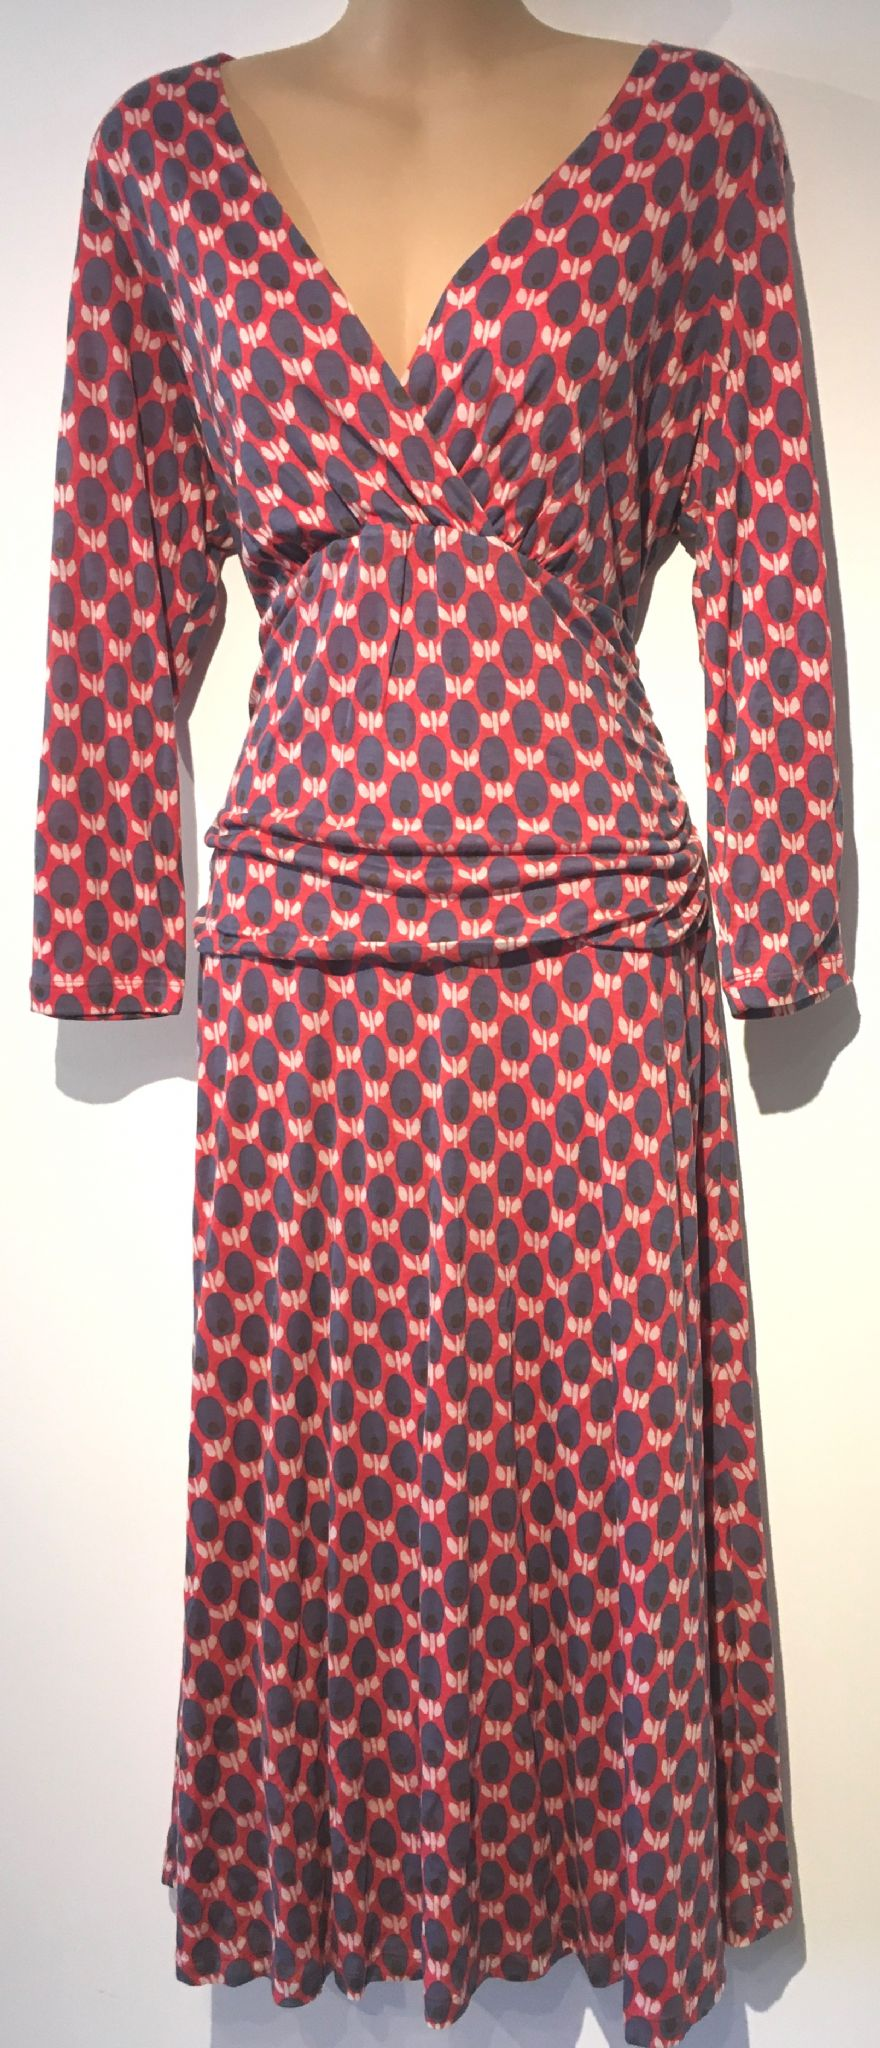 Boden Coral Navy Printed Cross Over Dress Size Uk 14l